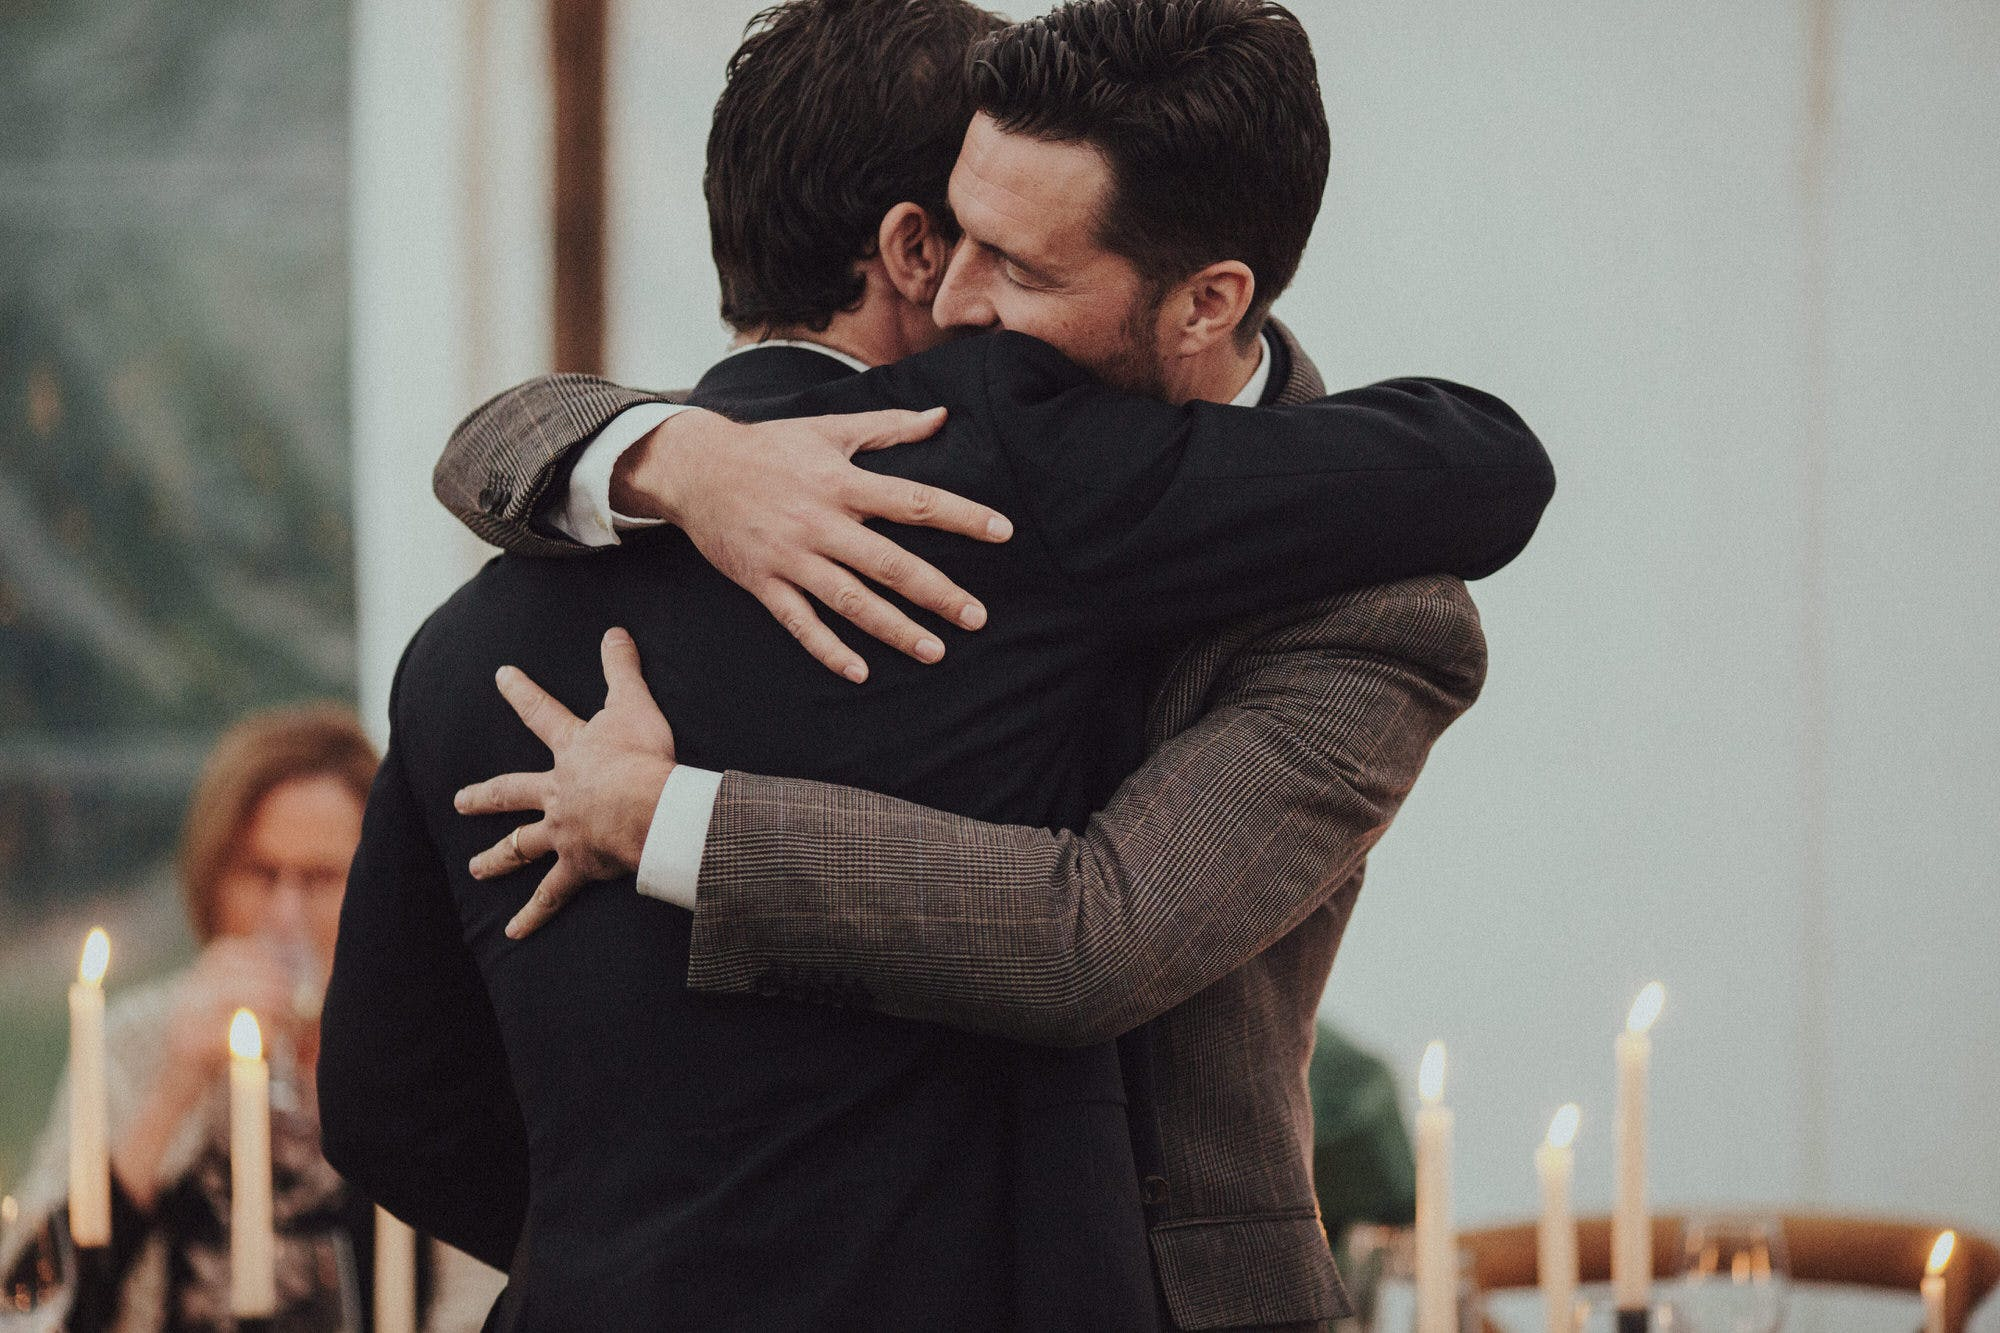 candid photos of hugs between groom and best man